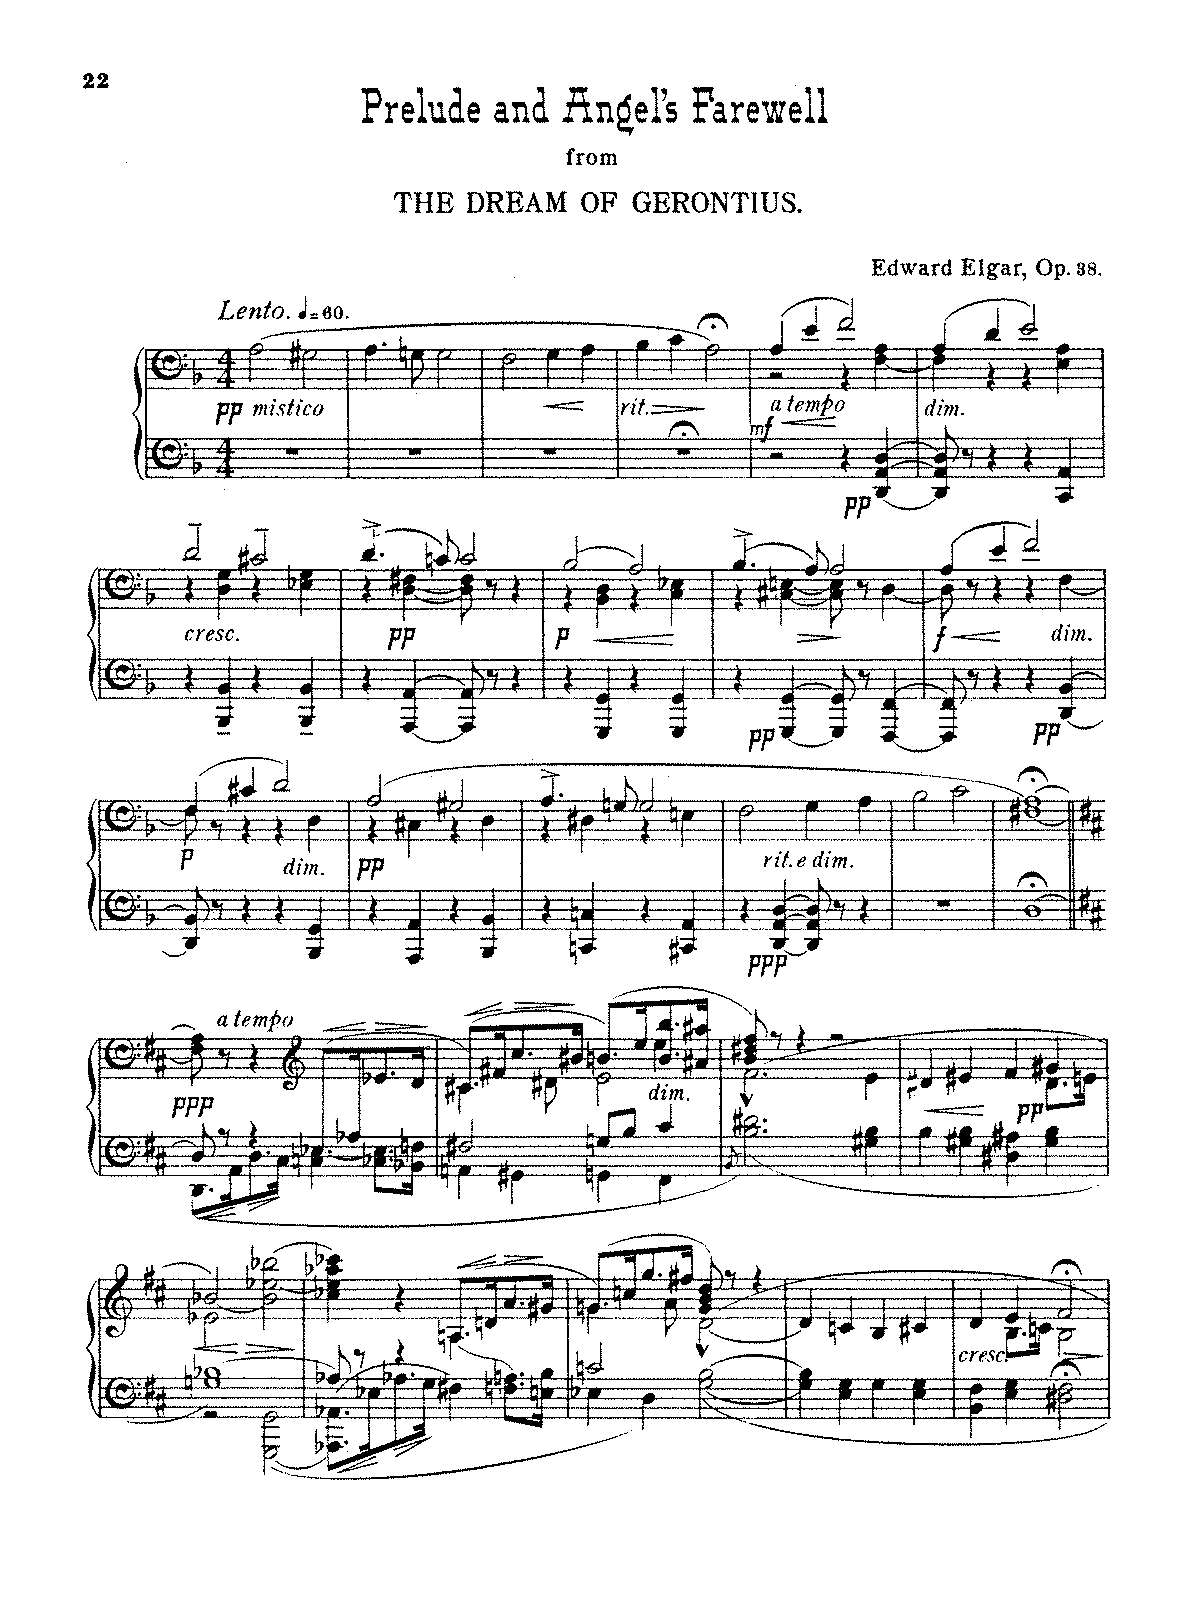 PMLP40537-Elgar - The Dream of Gerontius, Op. 38 - Prelude and Angel's Farewell (trans. Elgar - piano).pdf